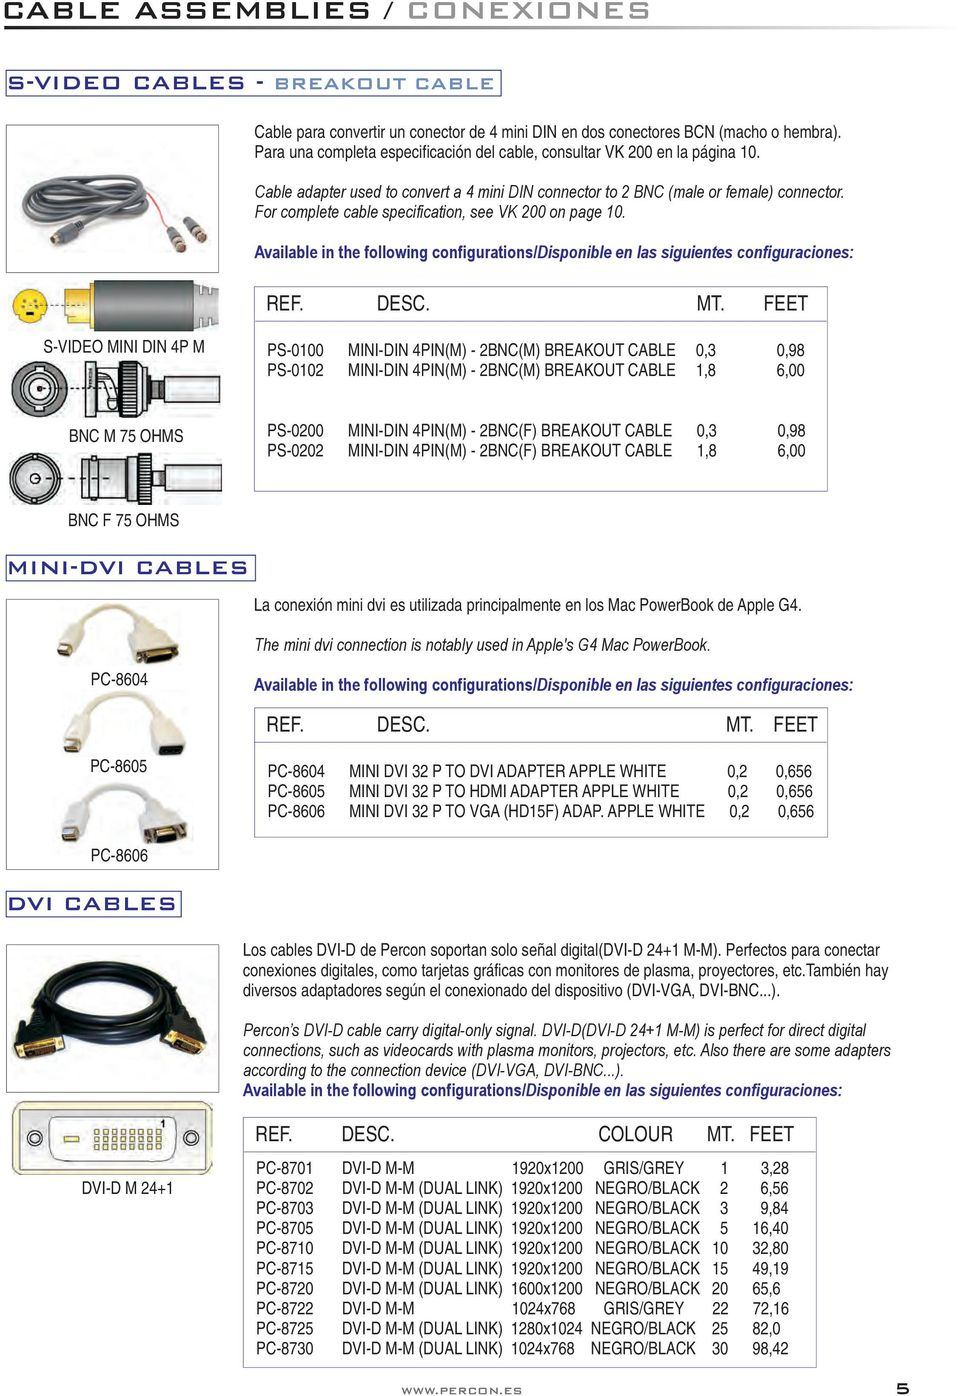 For complete cable specification, see VK 200 on page 10.